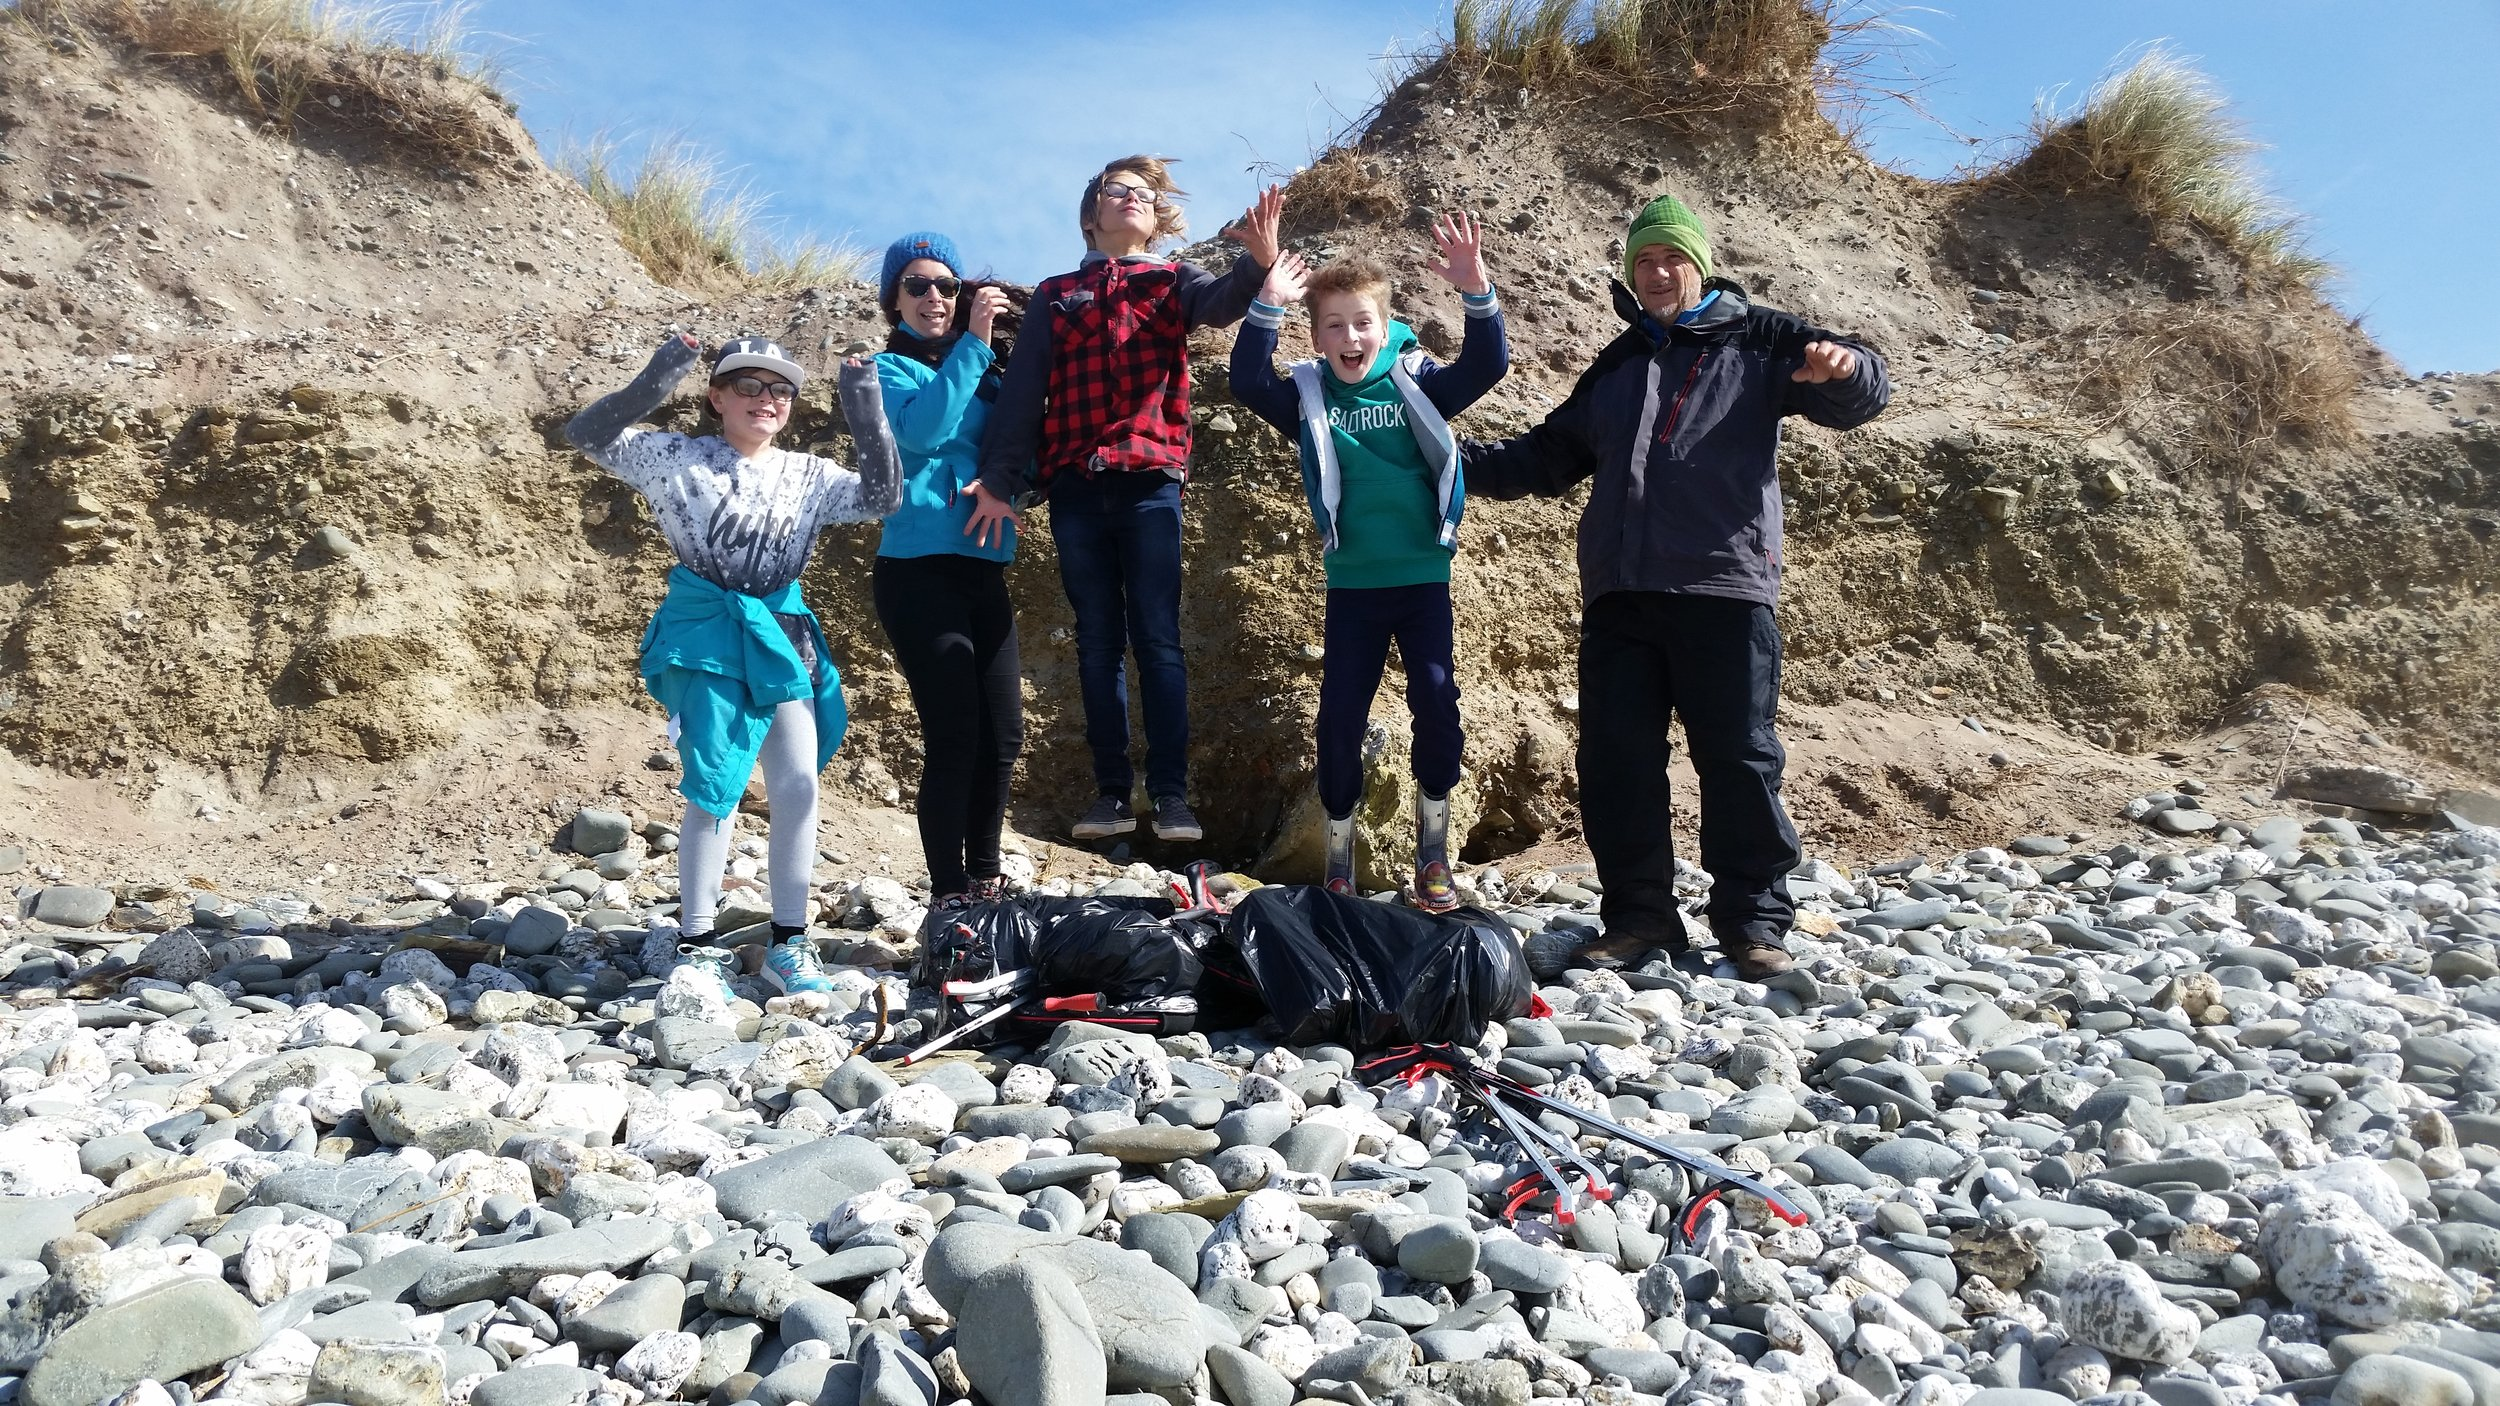 The whole beach cleaning gang with the day's haul ~400 pieces at 7kg, jumping for joy of finishing a hard clean